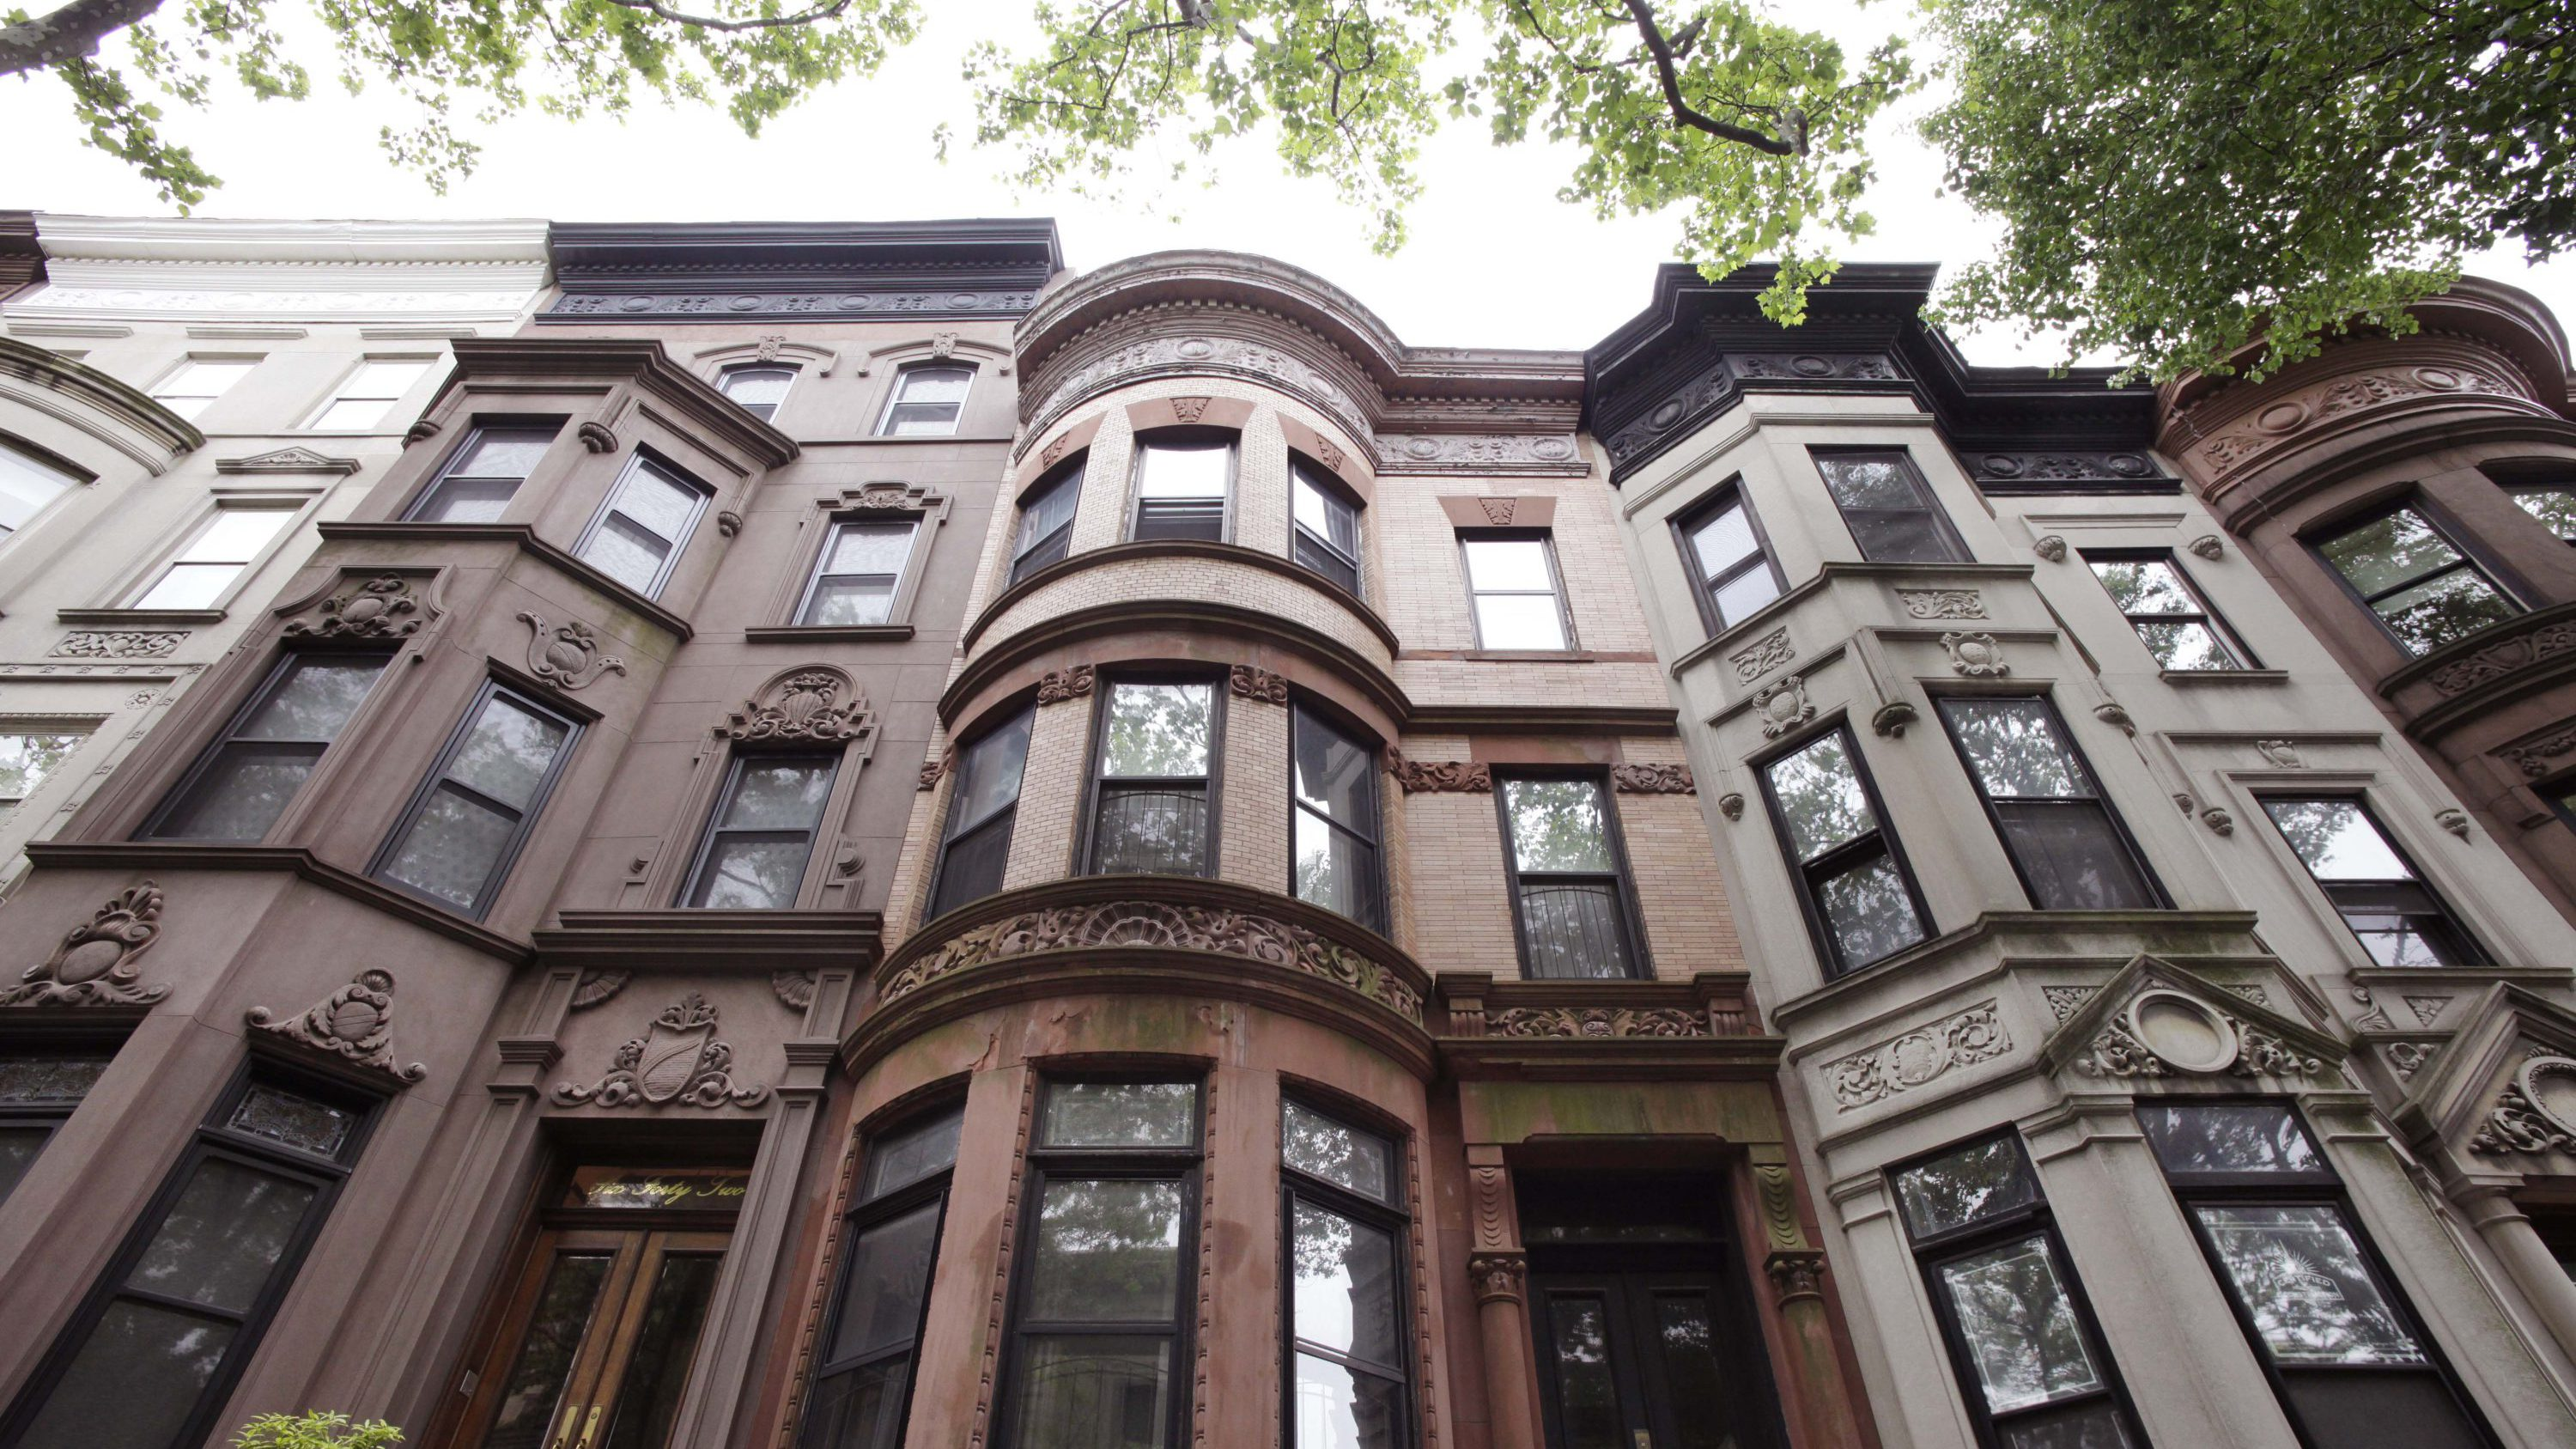 This brownstone townhouse, center, is located at 640 2nd St. in the Park Slope neighborhood of Brooklyn, N.Y., Thursday, May 3, 2012. It is on the block between Prospect Park West and Eighth Ave.